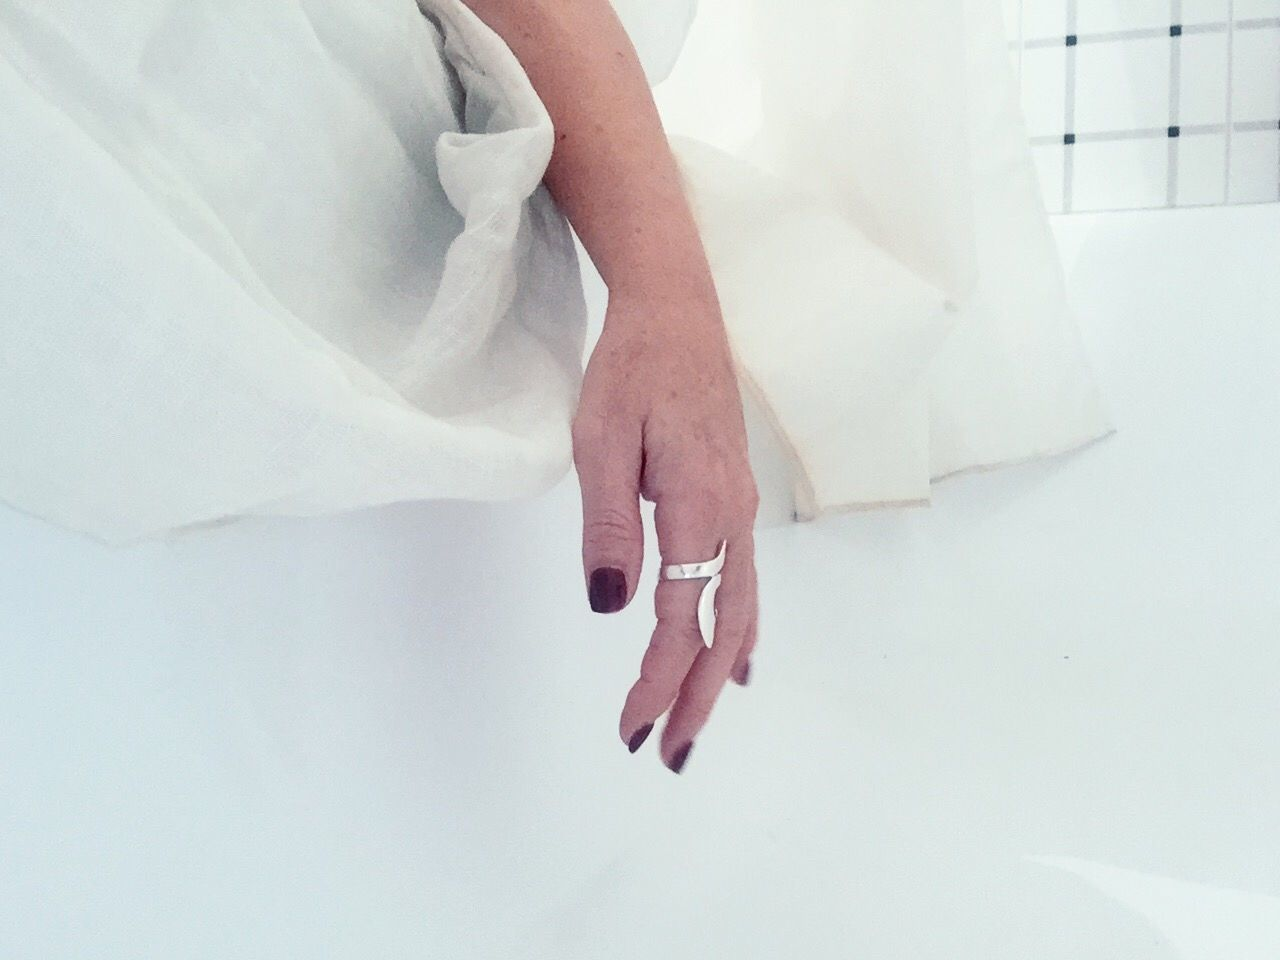 INAUDIBLE WHITE, UNSPOKEN AS A CLOUD; WHILE FROM THE SILENCE, A THIRST OF BREATH [series], by Claudia Ioan Real People Human Hand Lifestyles One Person Women Indoors  Close-up Human Body Part White Background VSCO Mobile Photography IPhoneography Iphone6 White Day